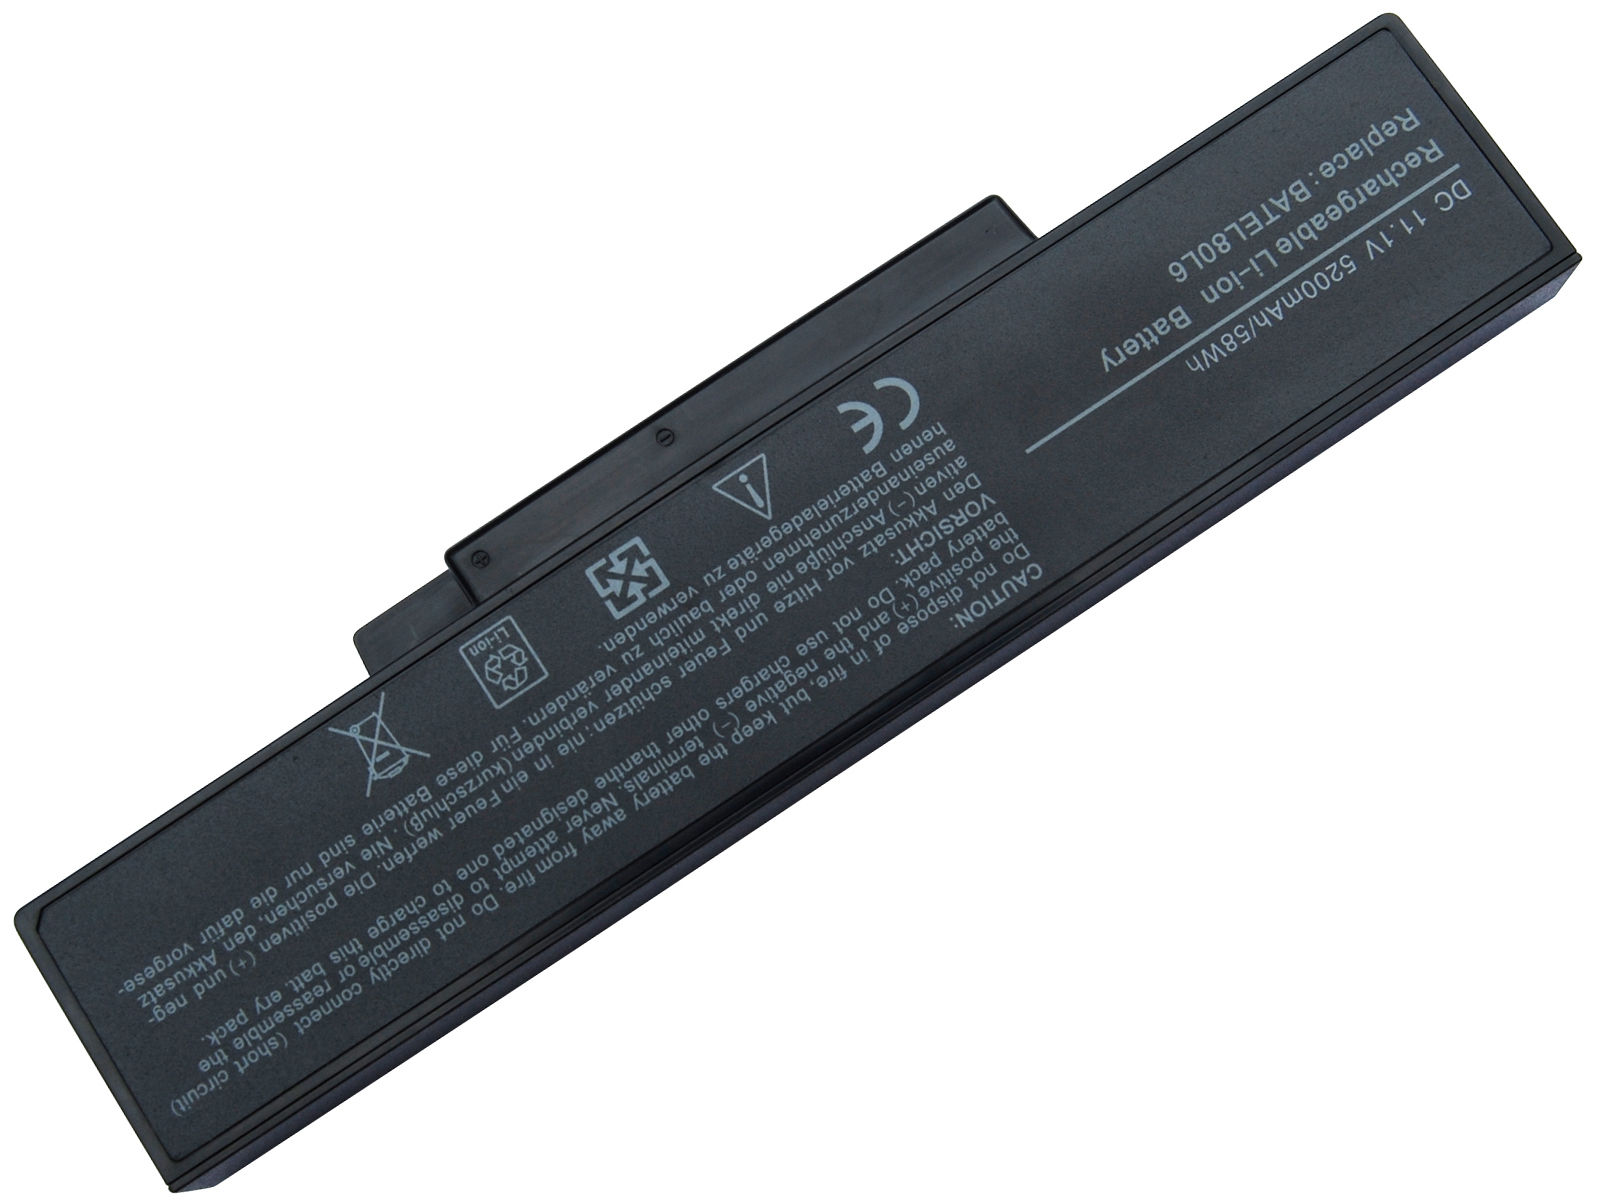 Replacement Msi GX610 Battery